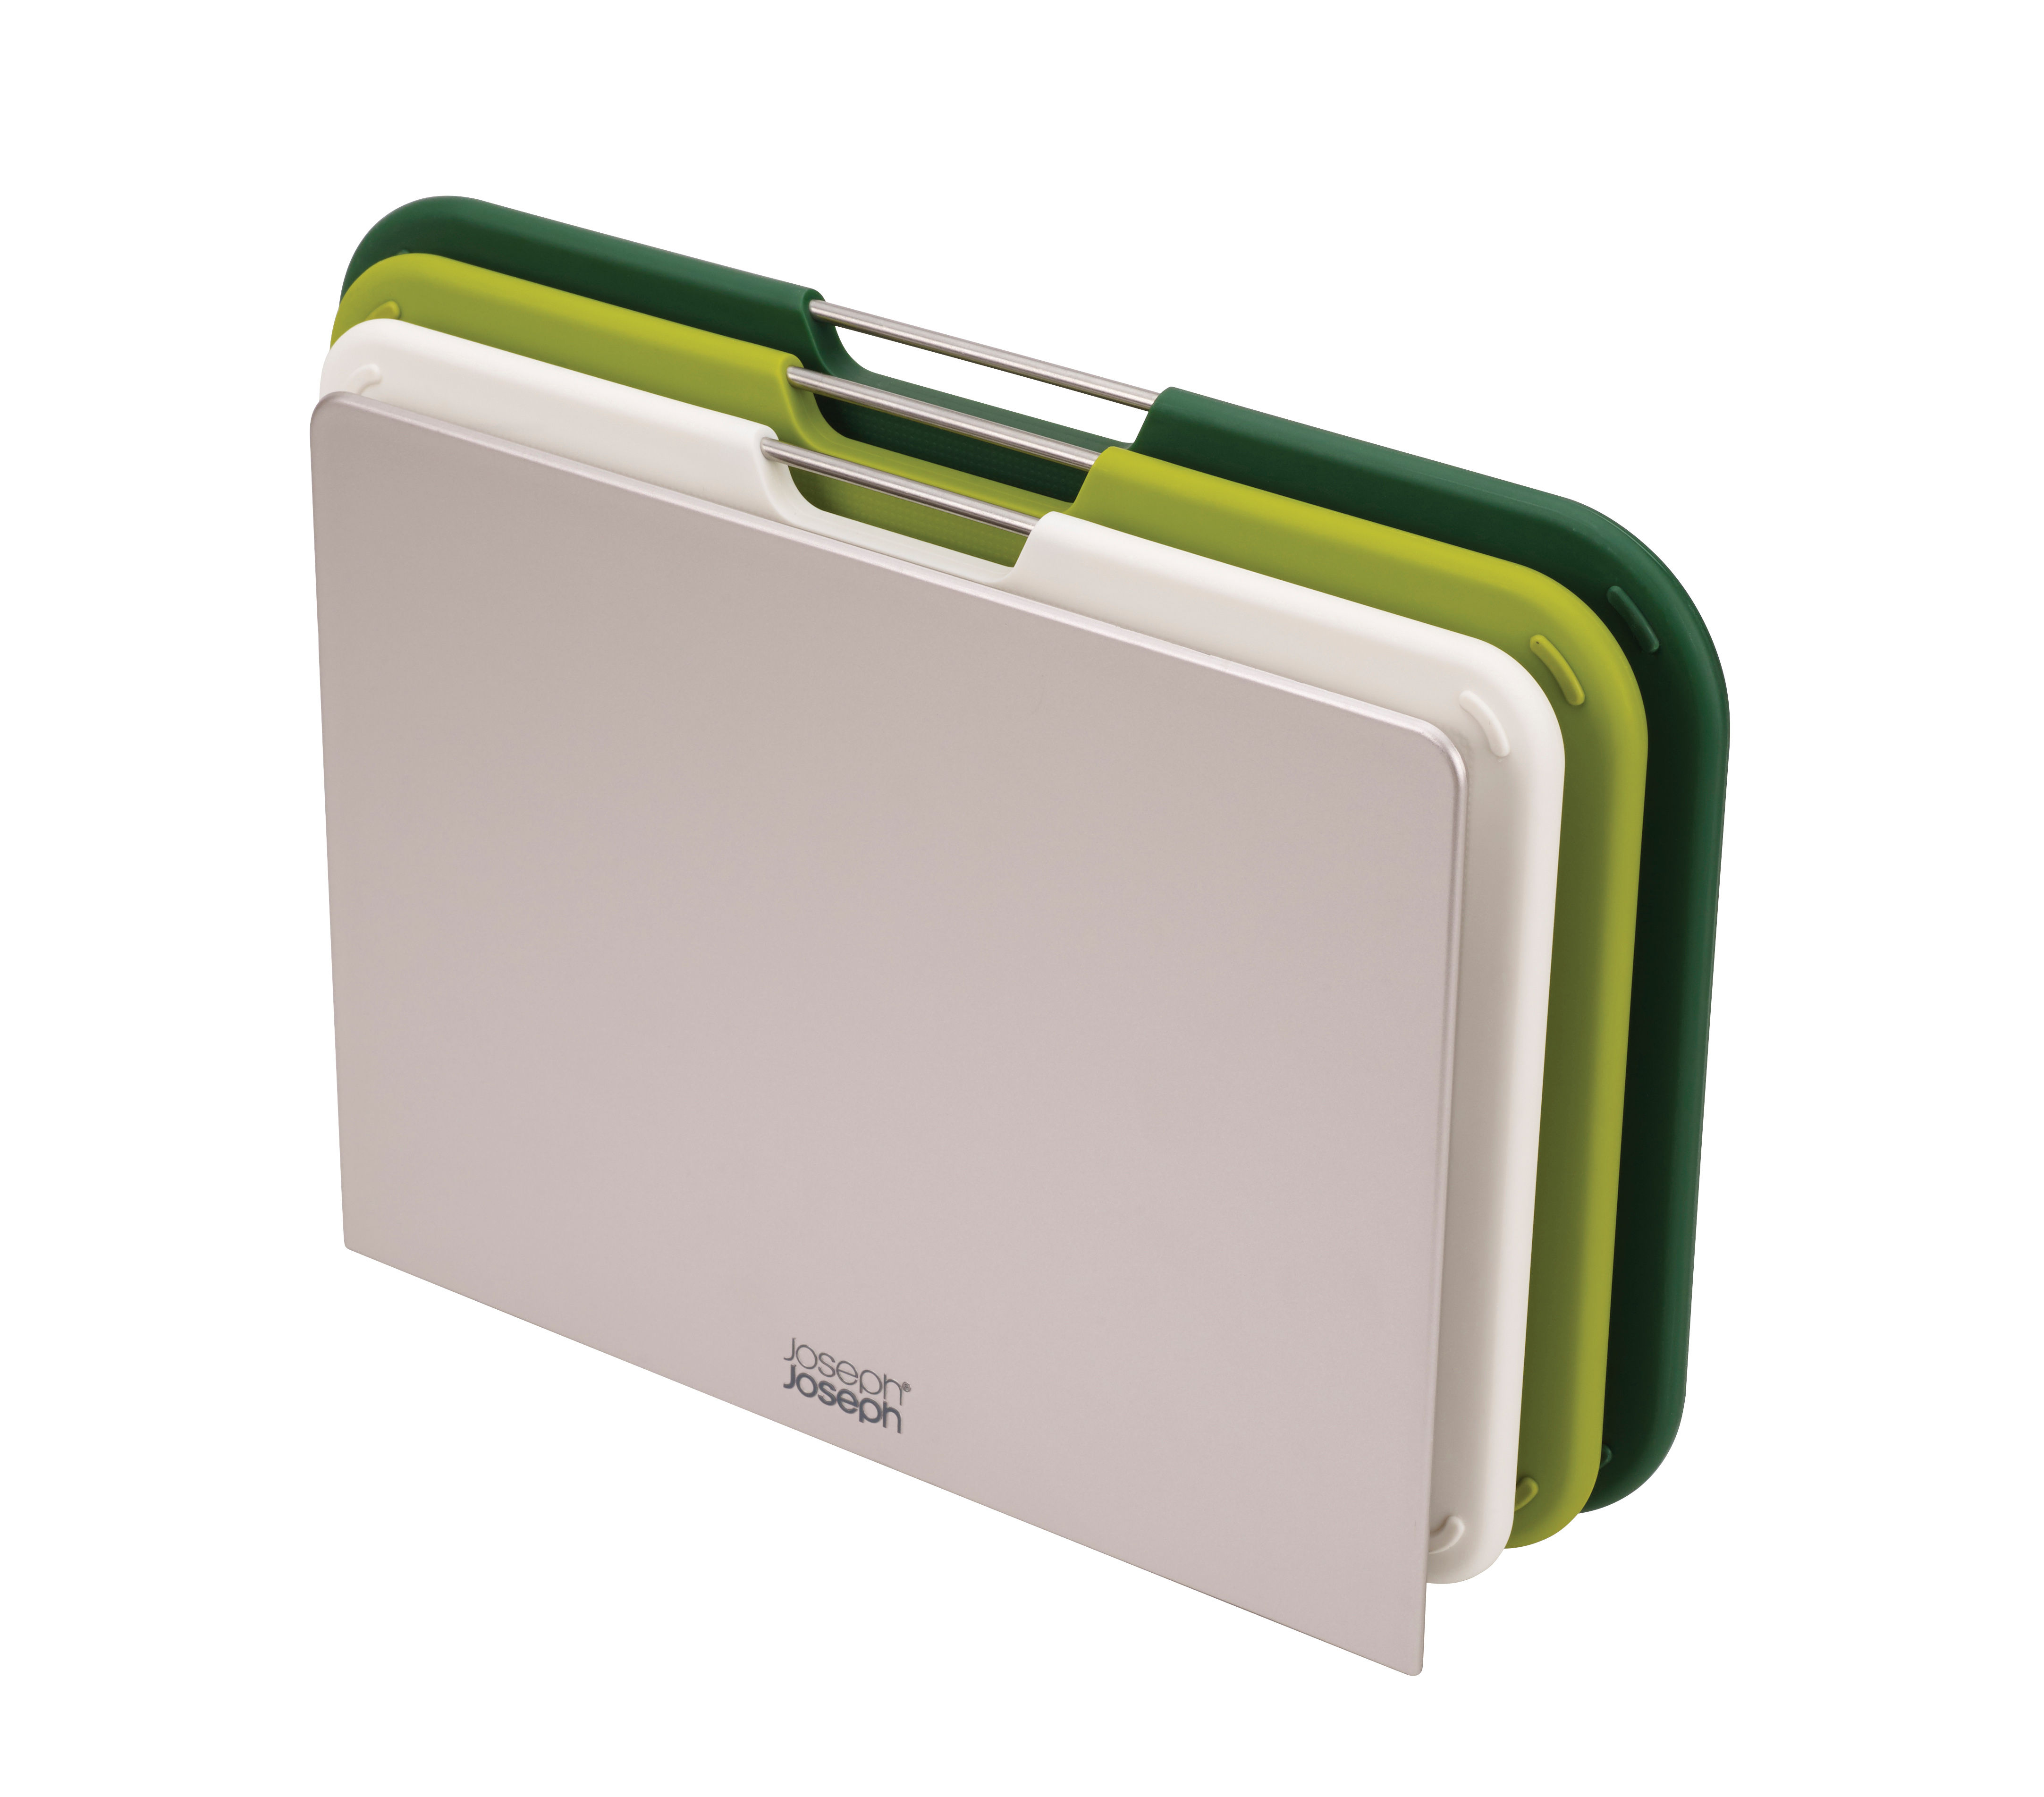 Kitchenware - Kitchen Equipment - Nest Small Chopping board - / 3-board set + stand by Joseph Joseph - Green - ABS, Polypropylene, Steel